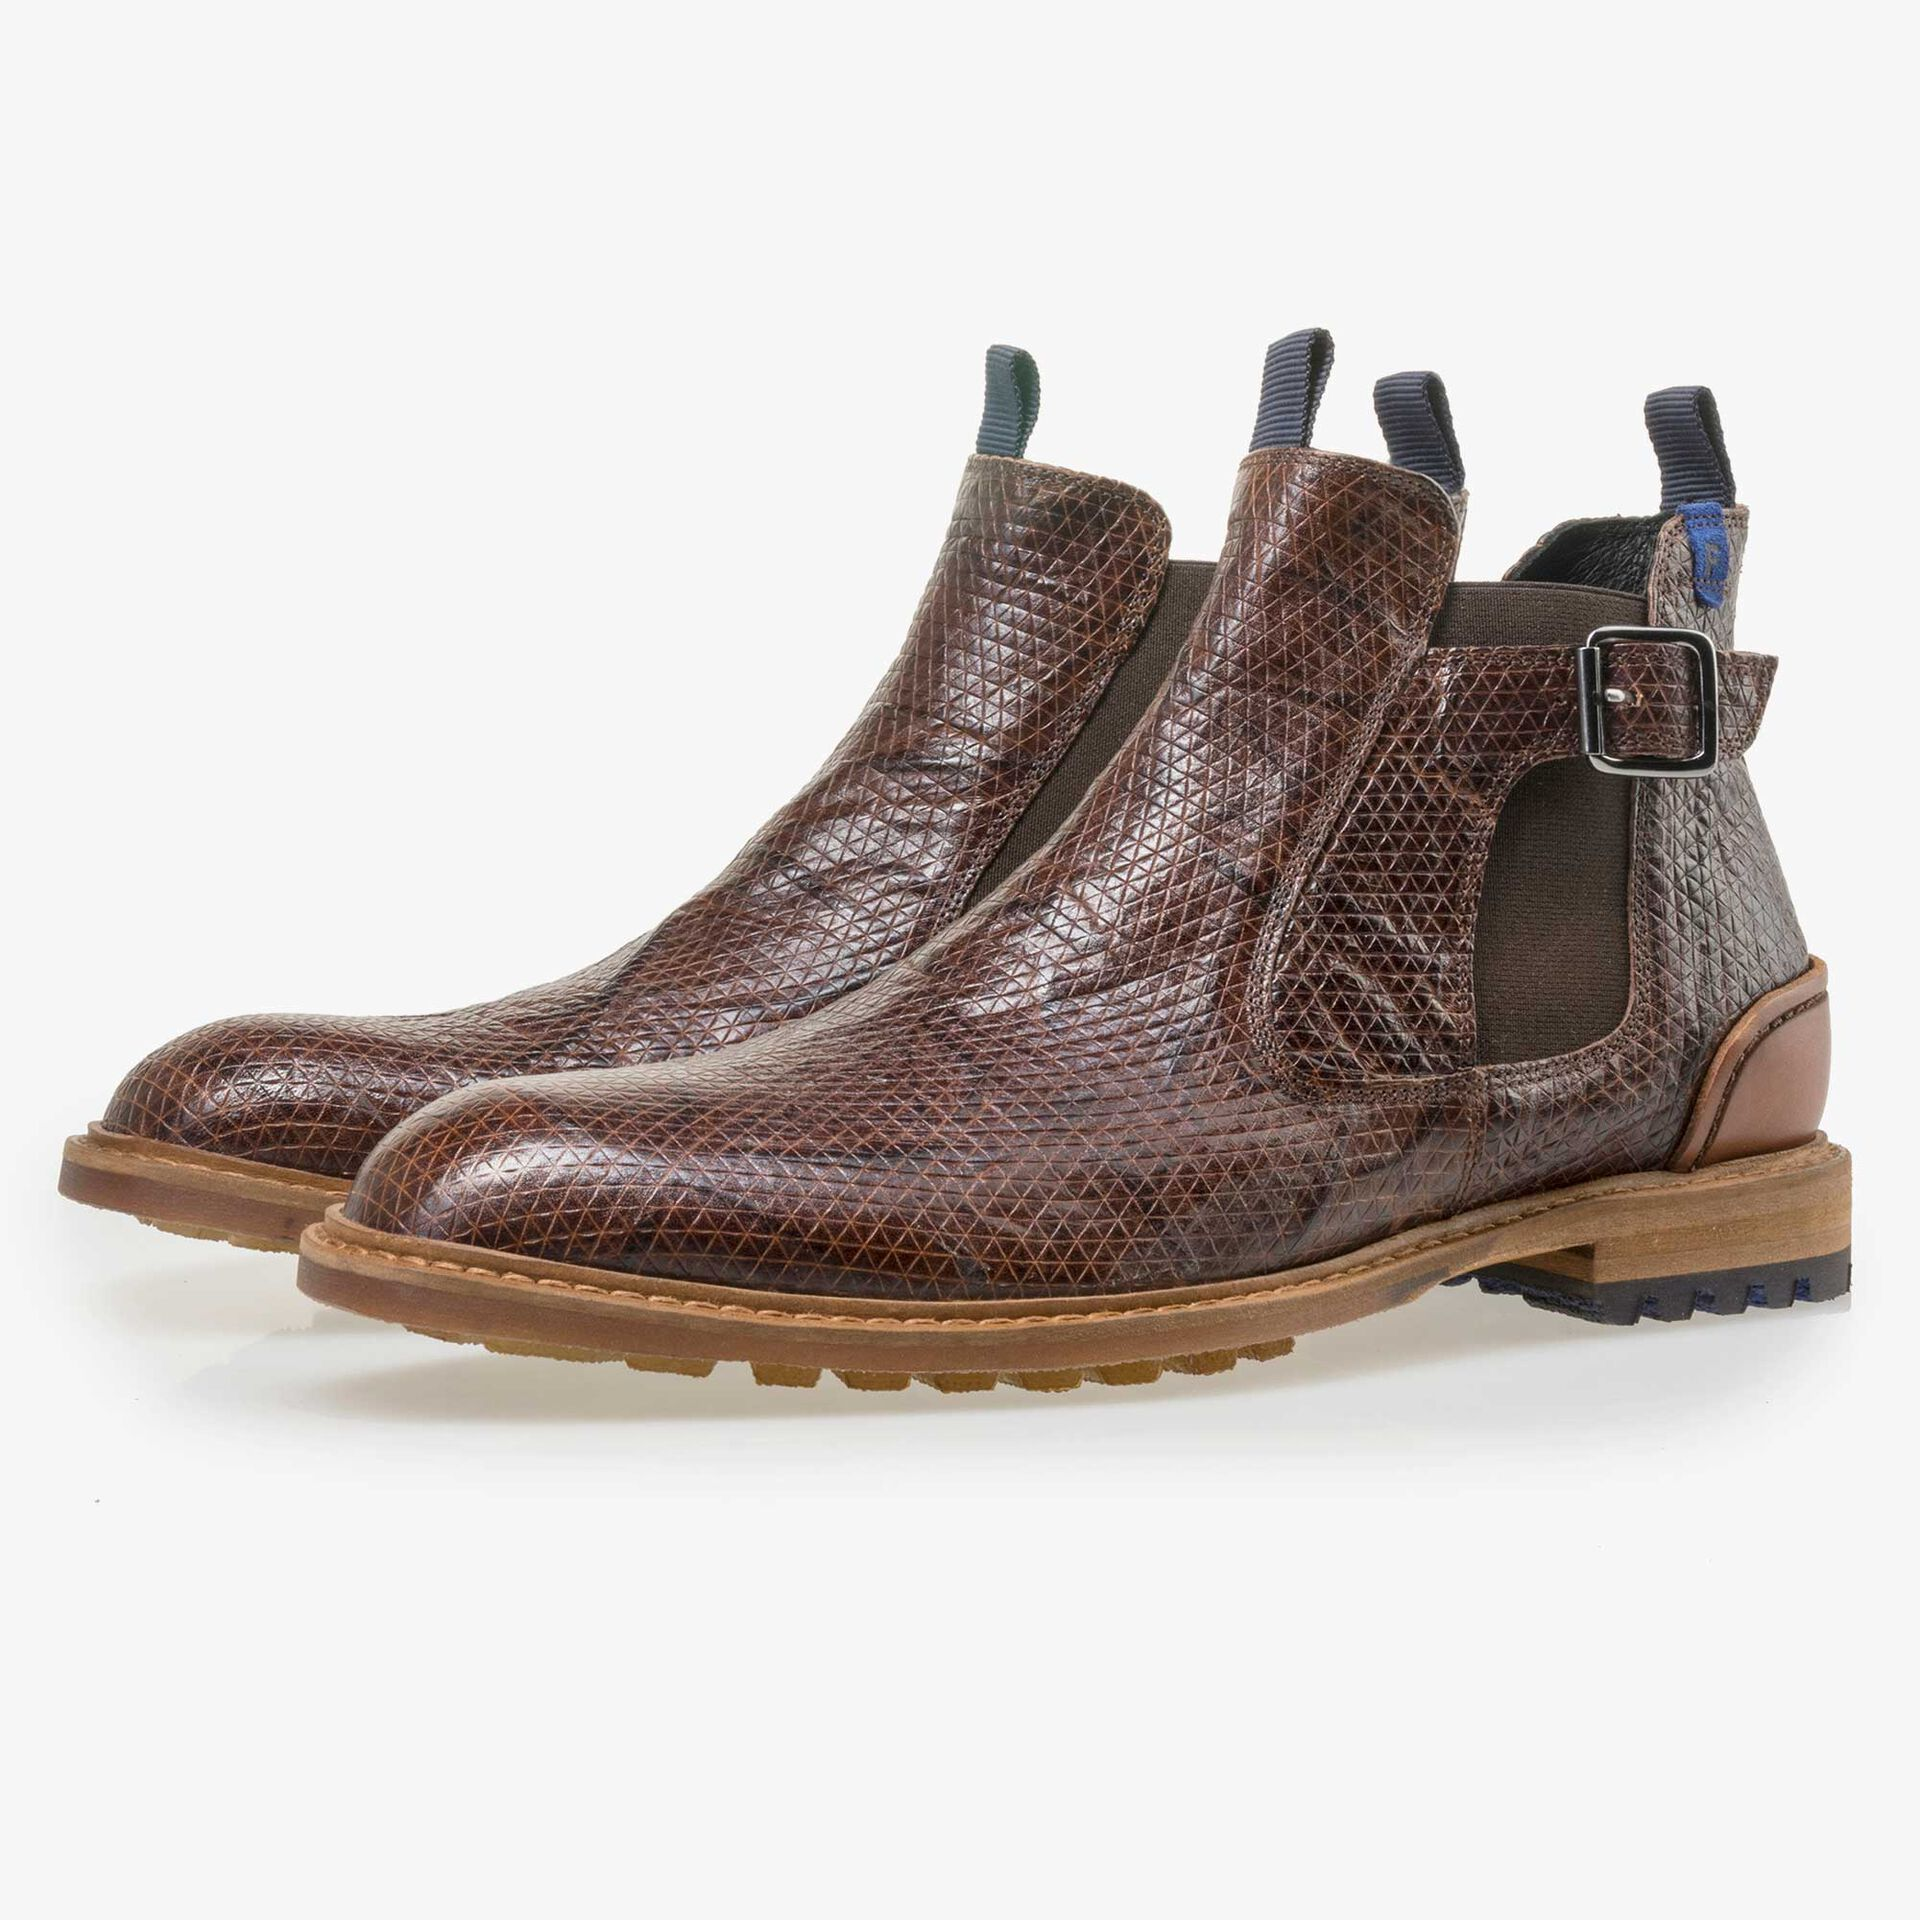 Floris van Bommel men's cognac-coloured leather Chelsea boot finished with a snake print